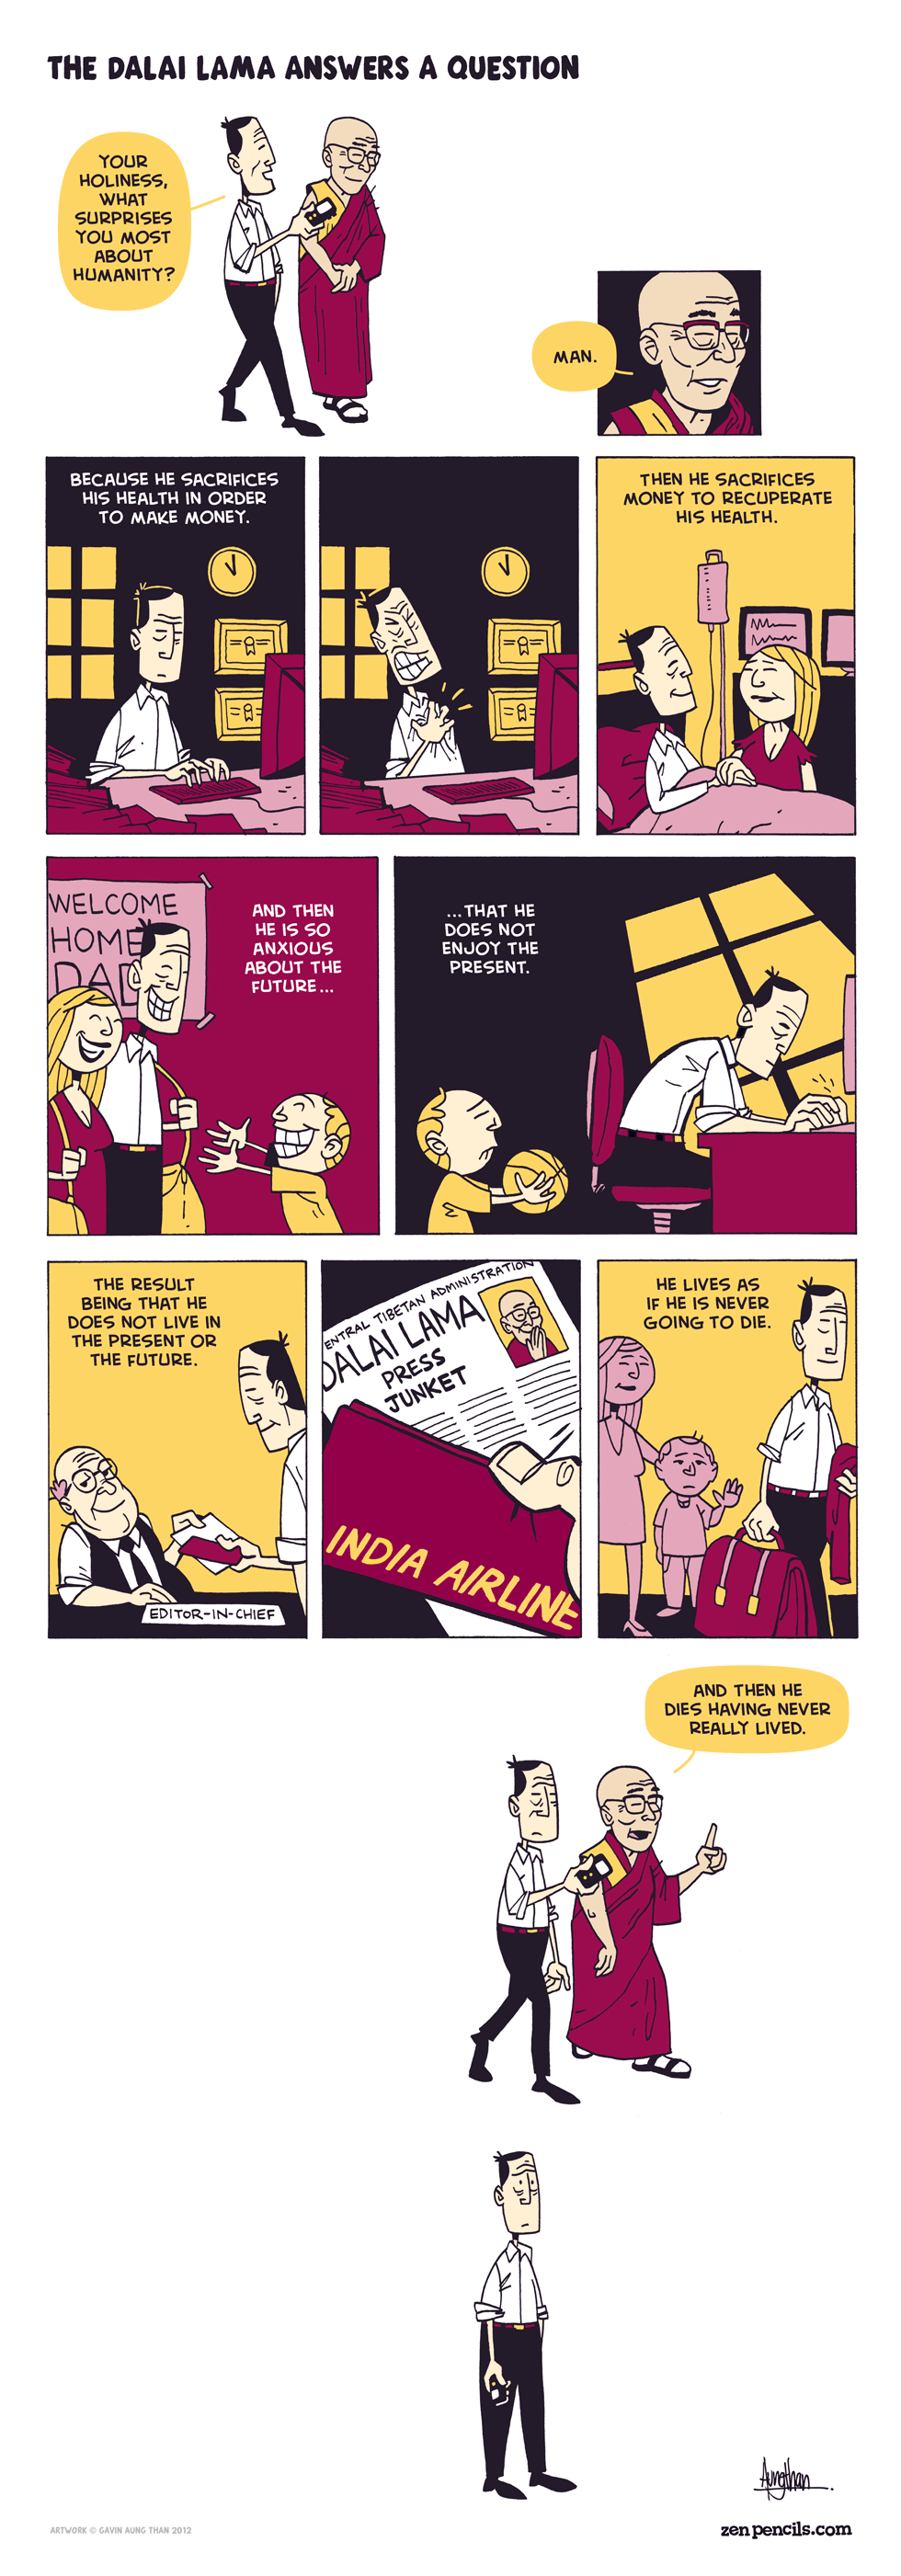 Comic of the Day: Dalai Lama answers a question